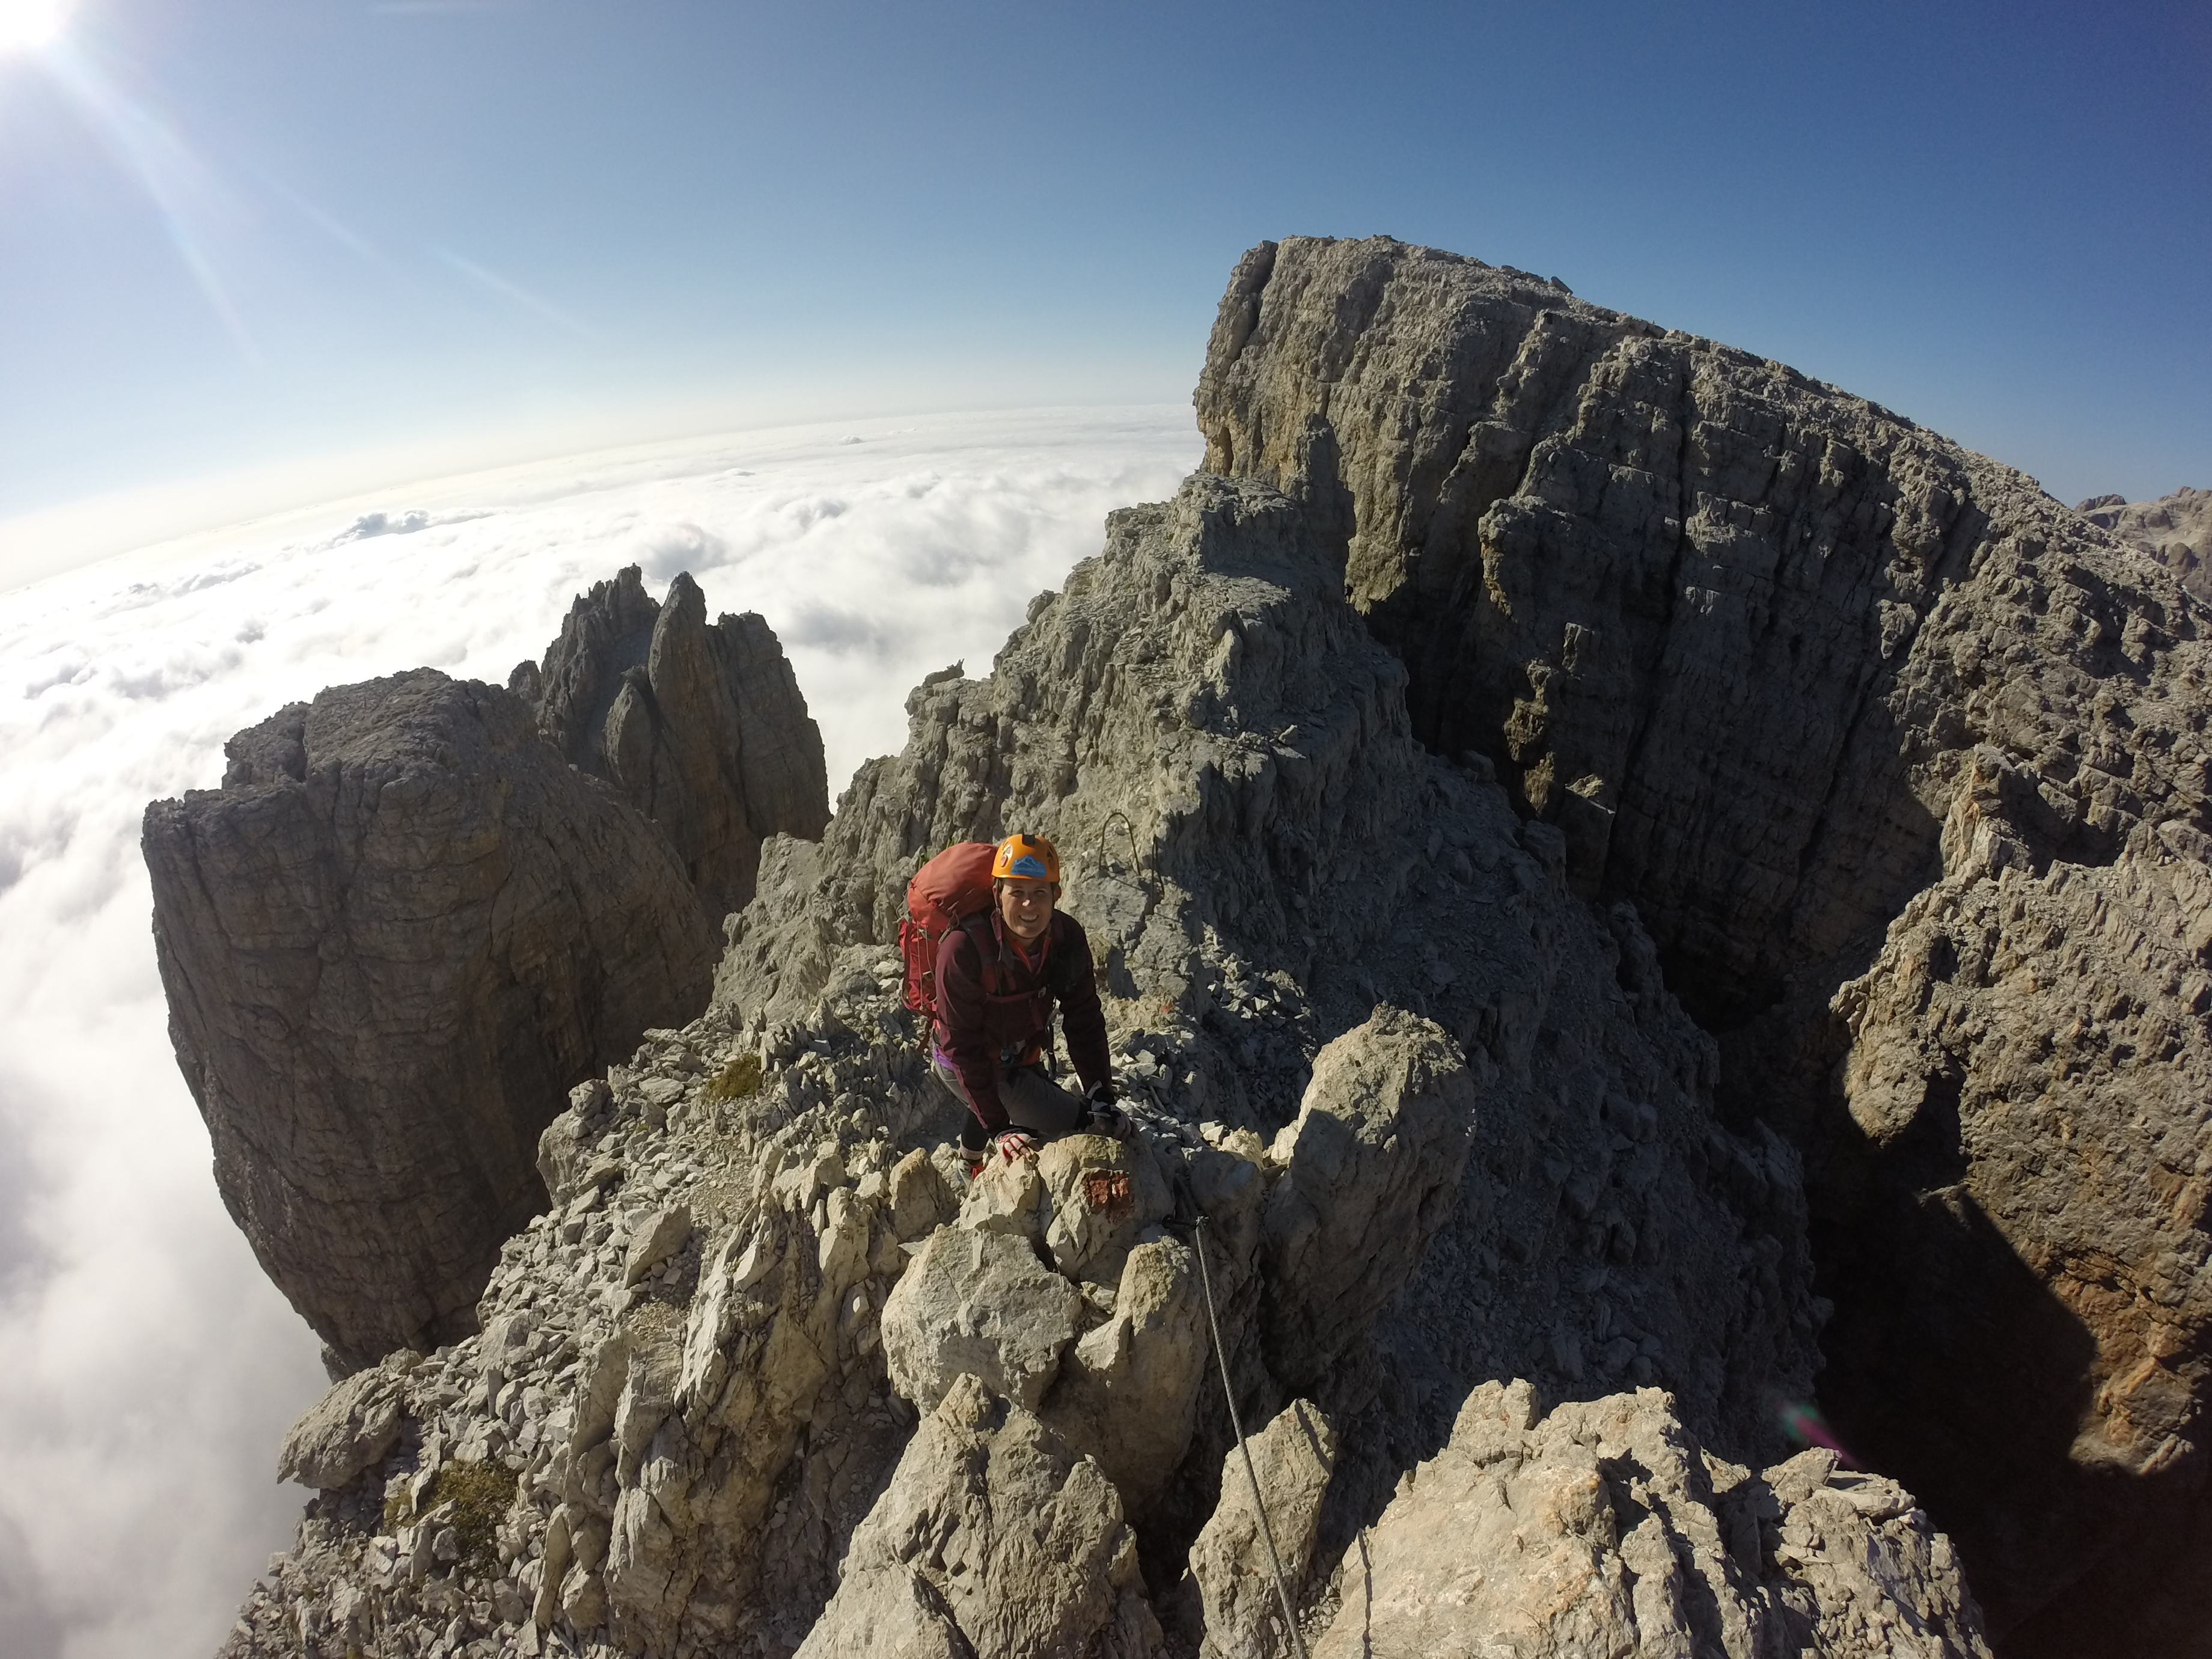 Climber above the clouds on a summit